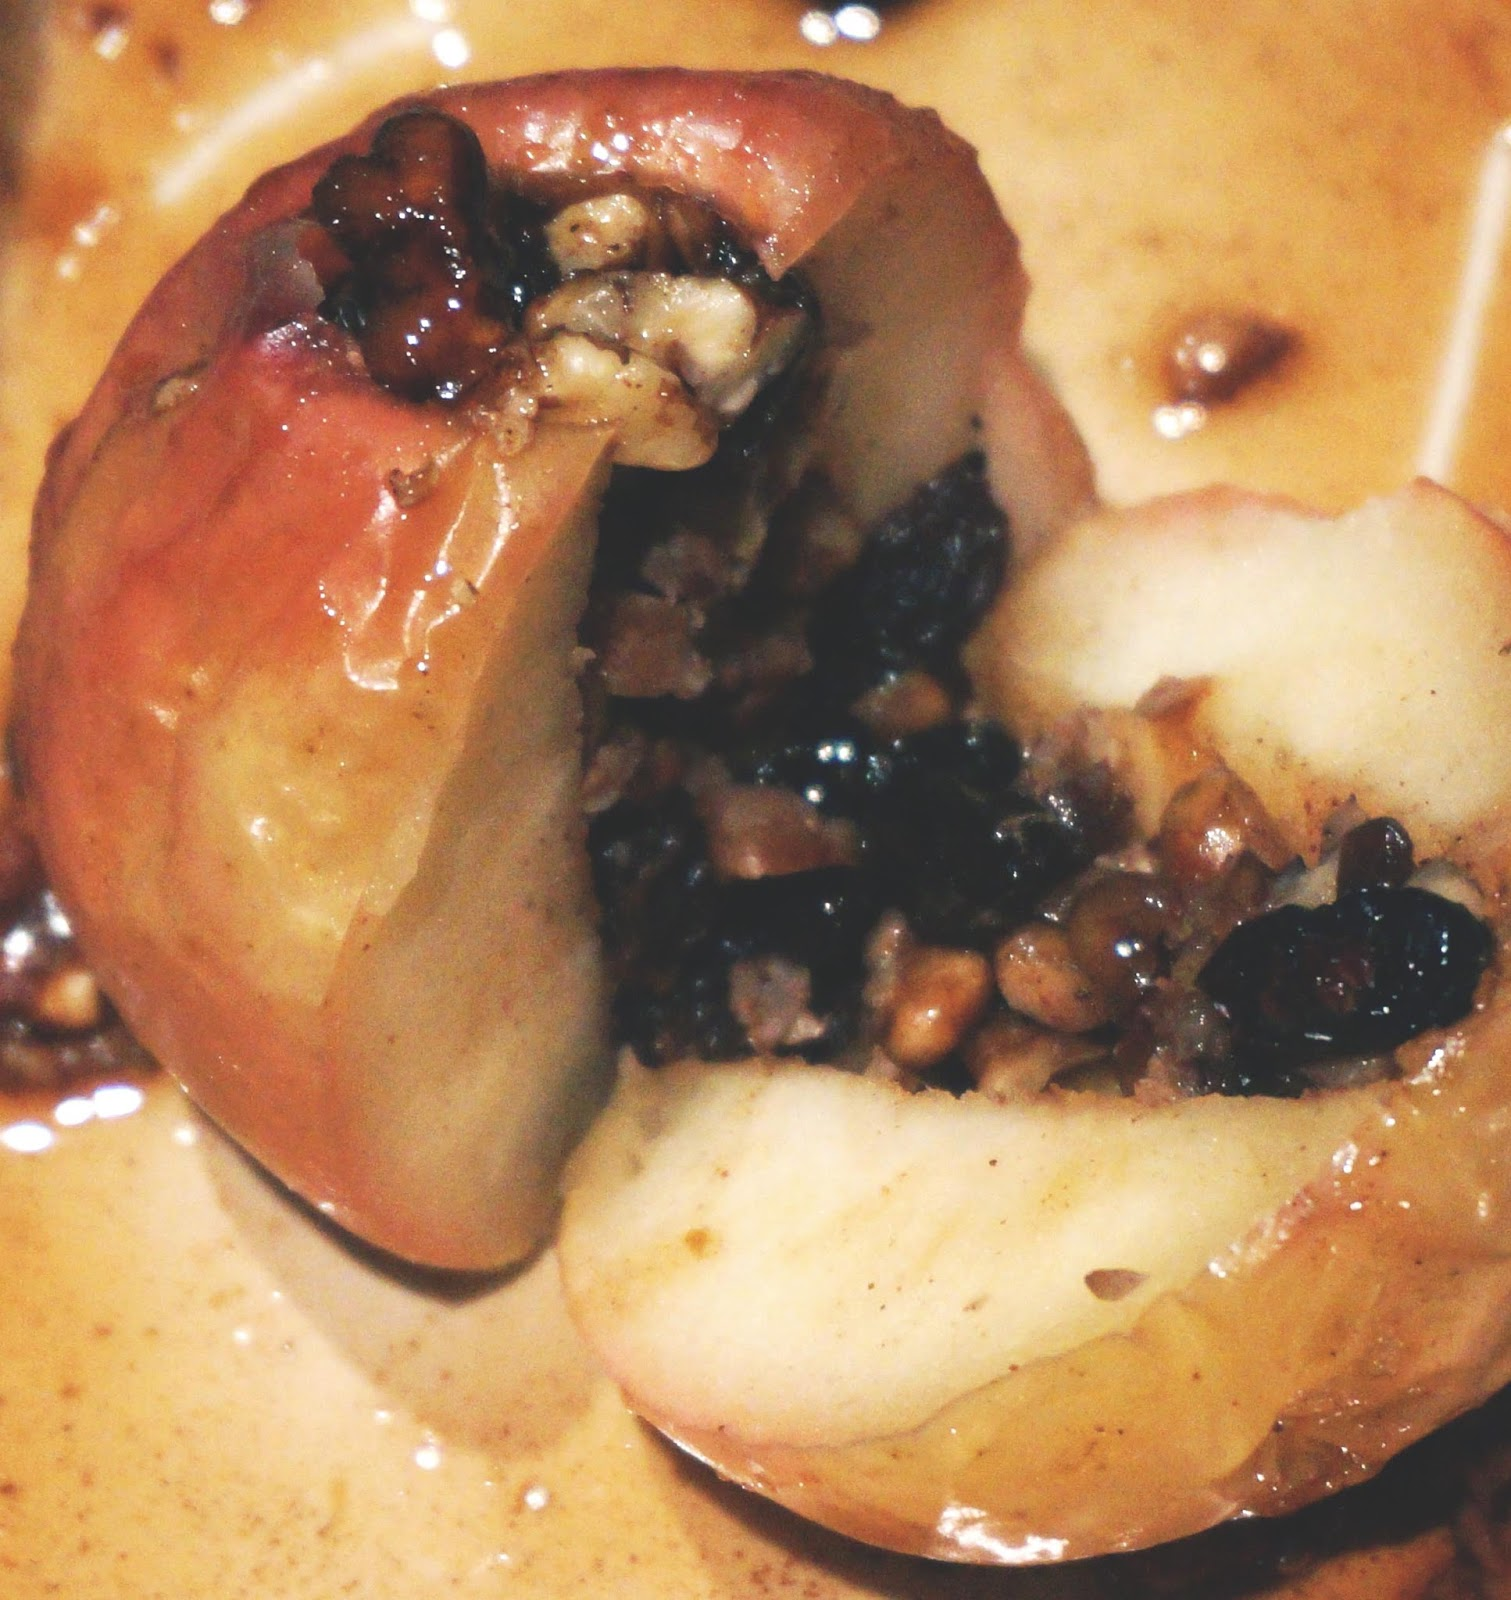 meg-made: Its All Good: Favourite Baked Apples